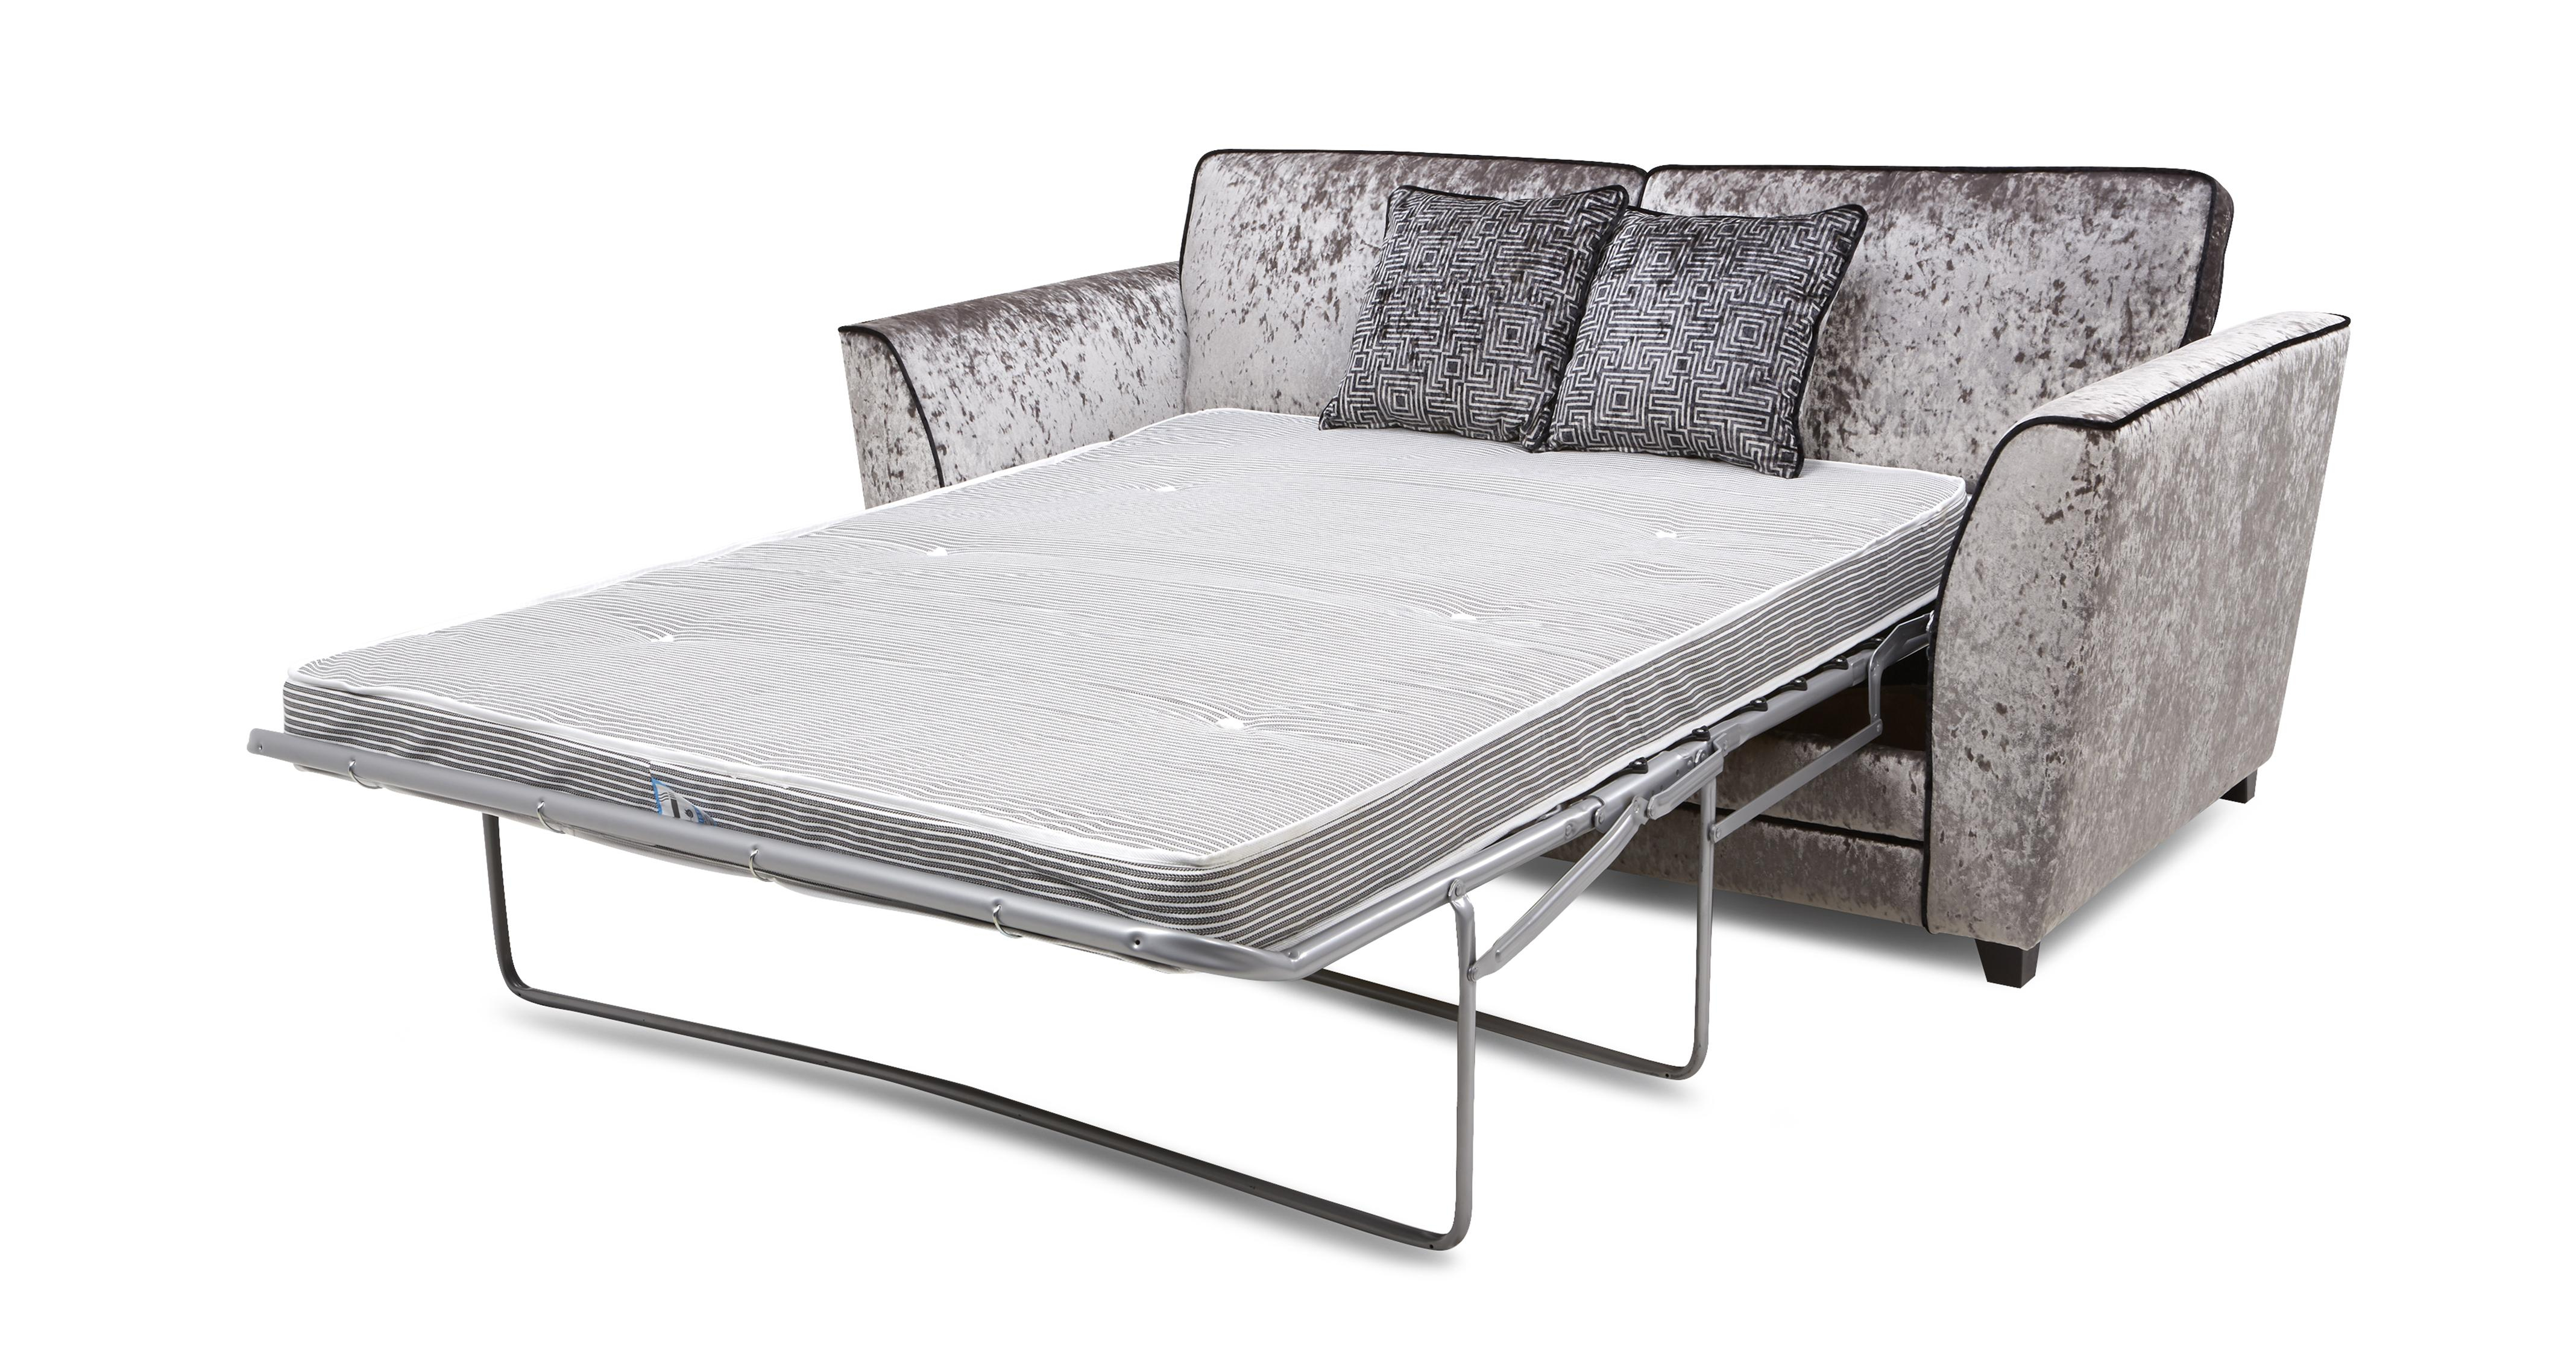 Illumino 3 Seater Formal Back Deluxe Sofa Bed